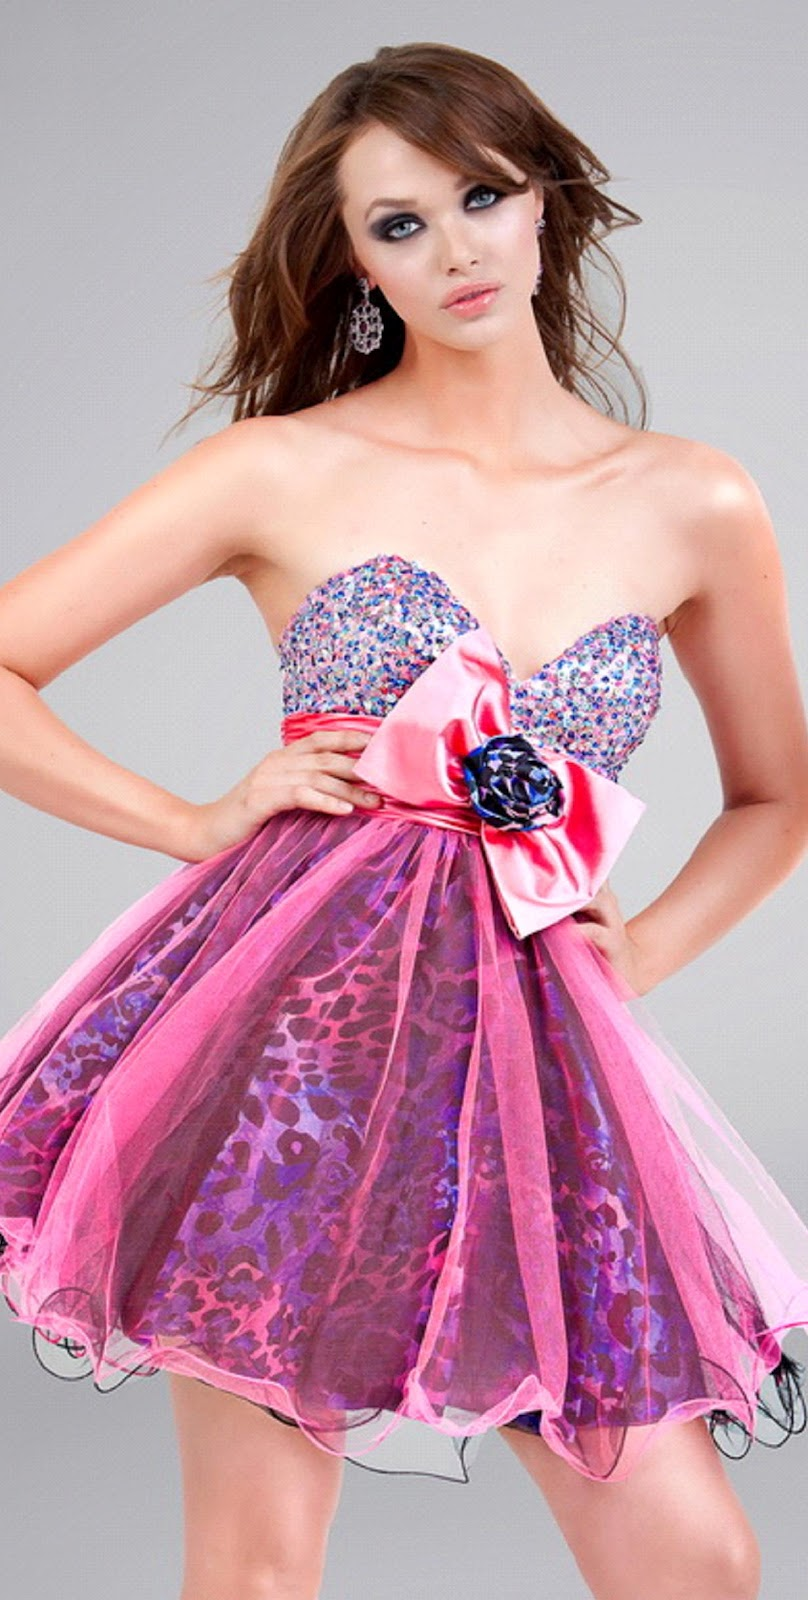 Girl With The White Balloon: Fairy Godmother \'Prom Boutique\' donates ...